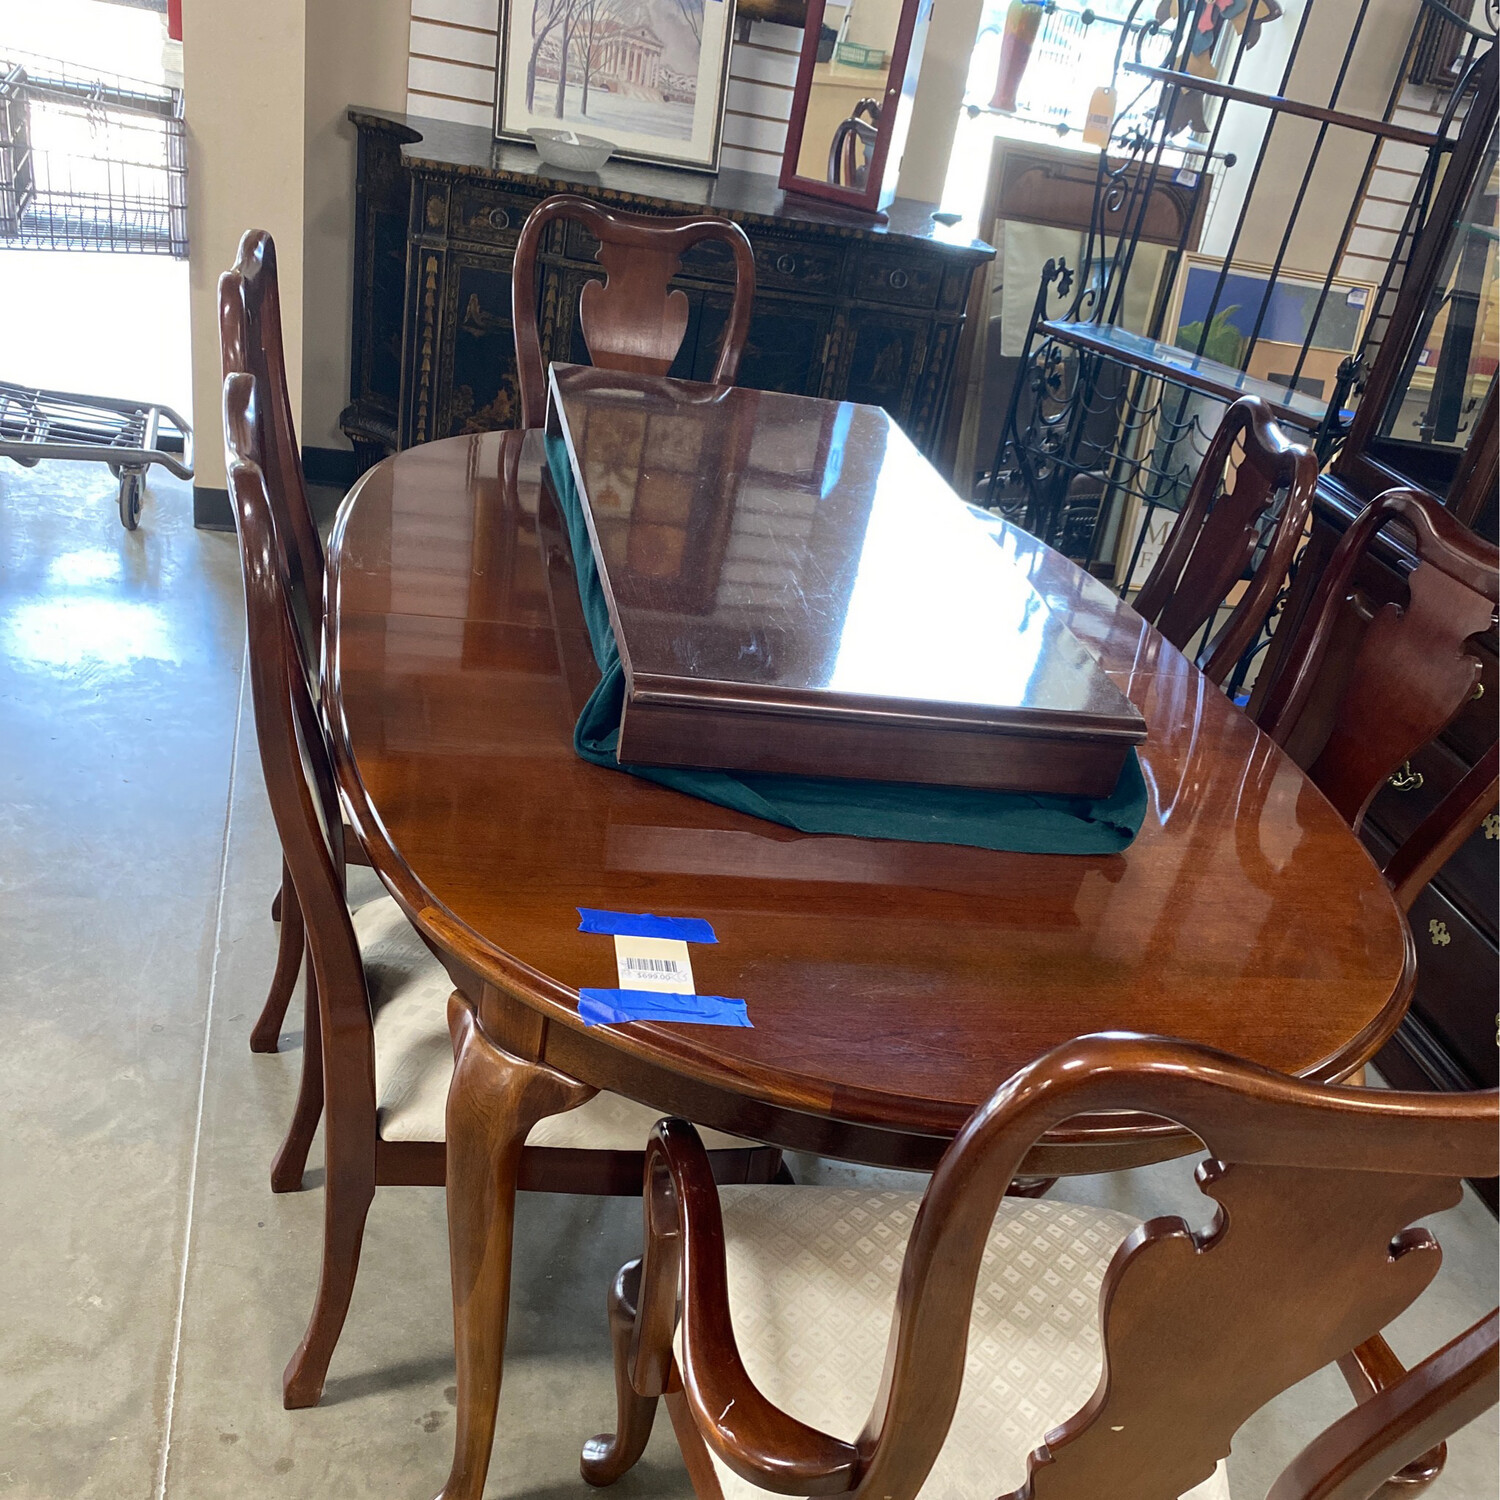 Thomasville 6 Chair Table With 2 Leaf's